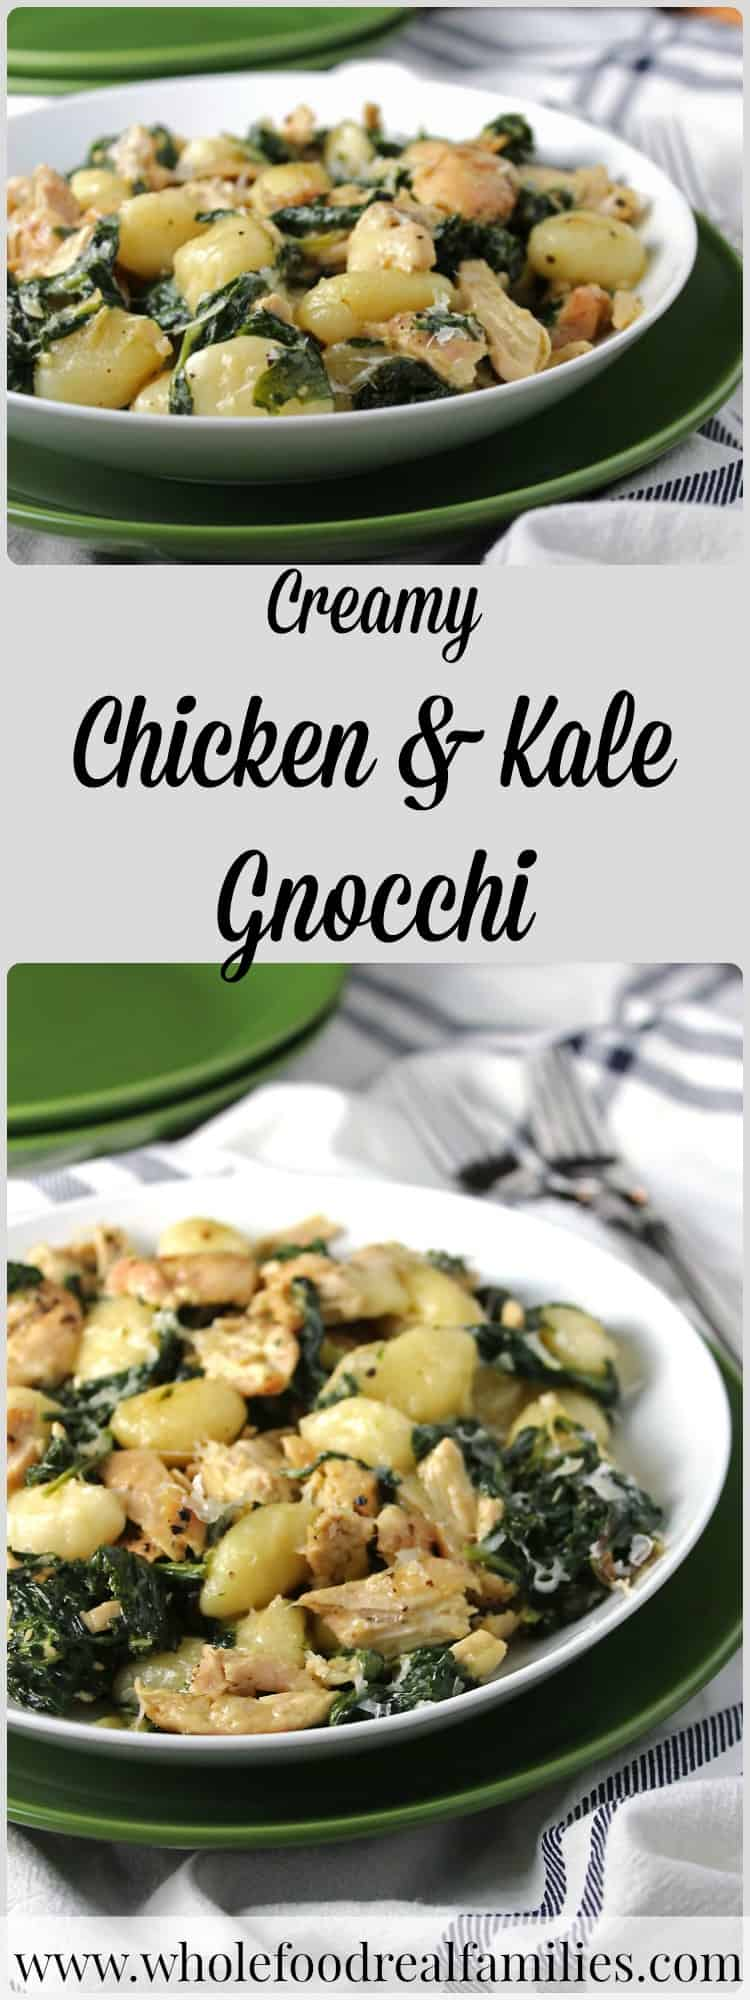 Creamy Chicken & Kale Gnocchi is a family favorite recipe that is sure to become your family's favorite too.